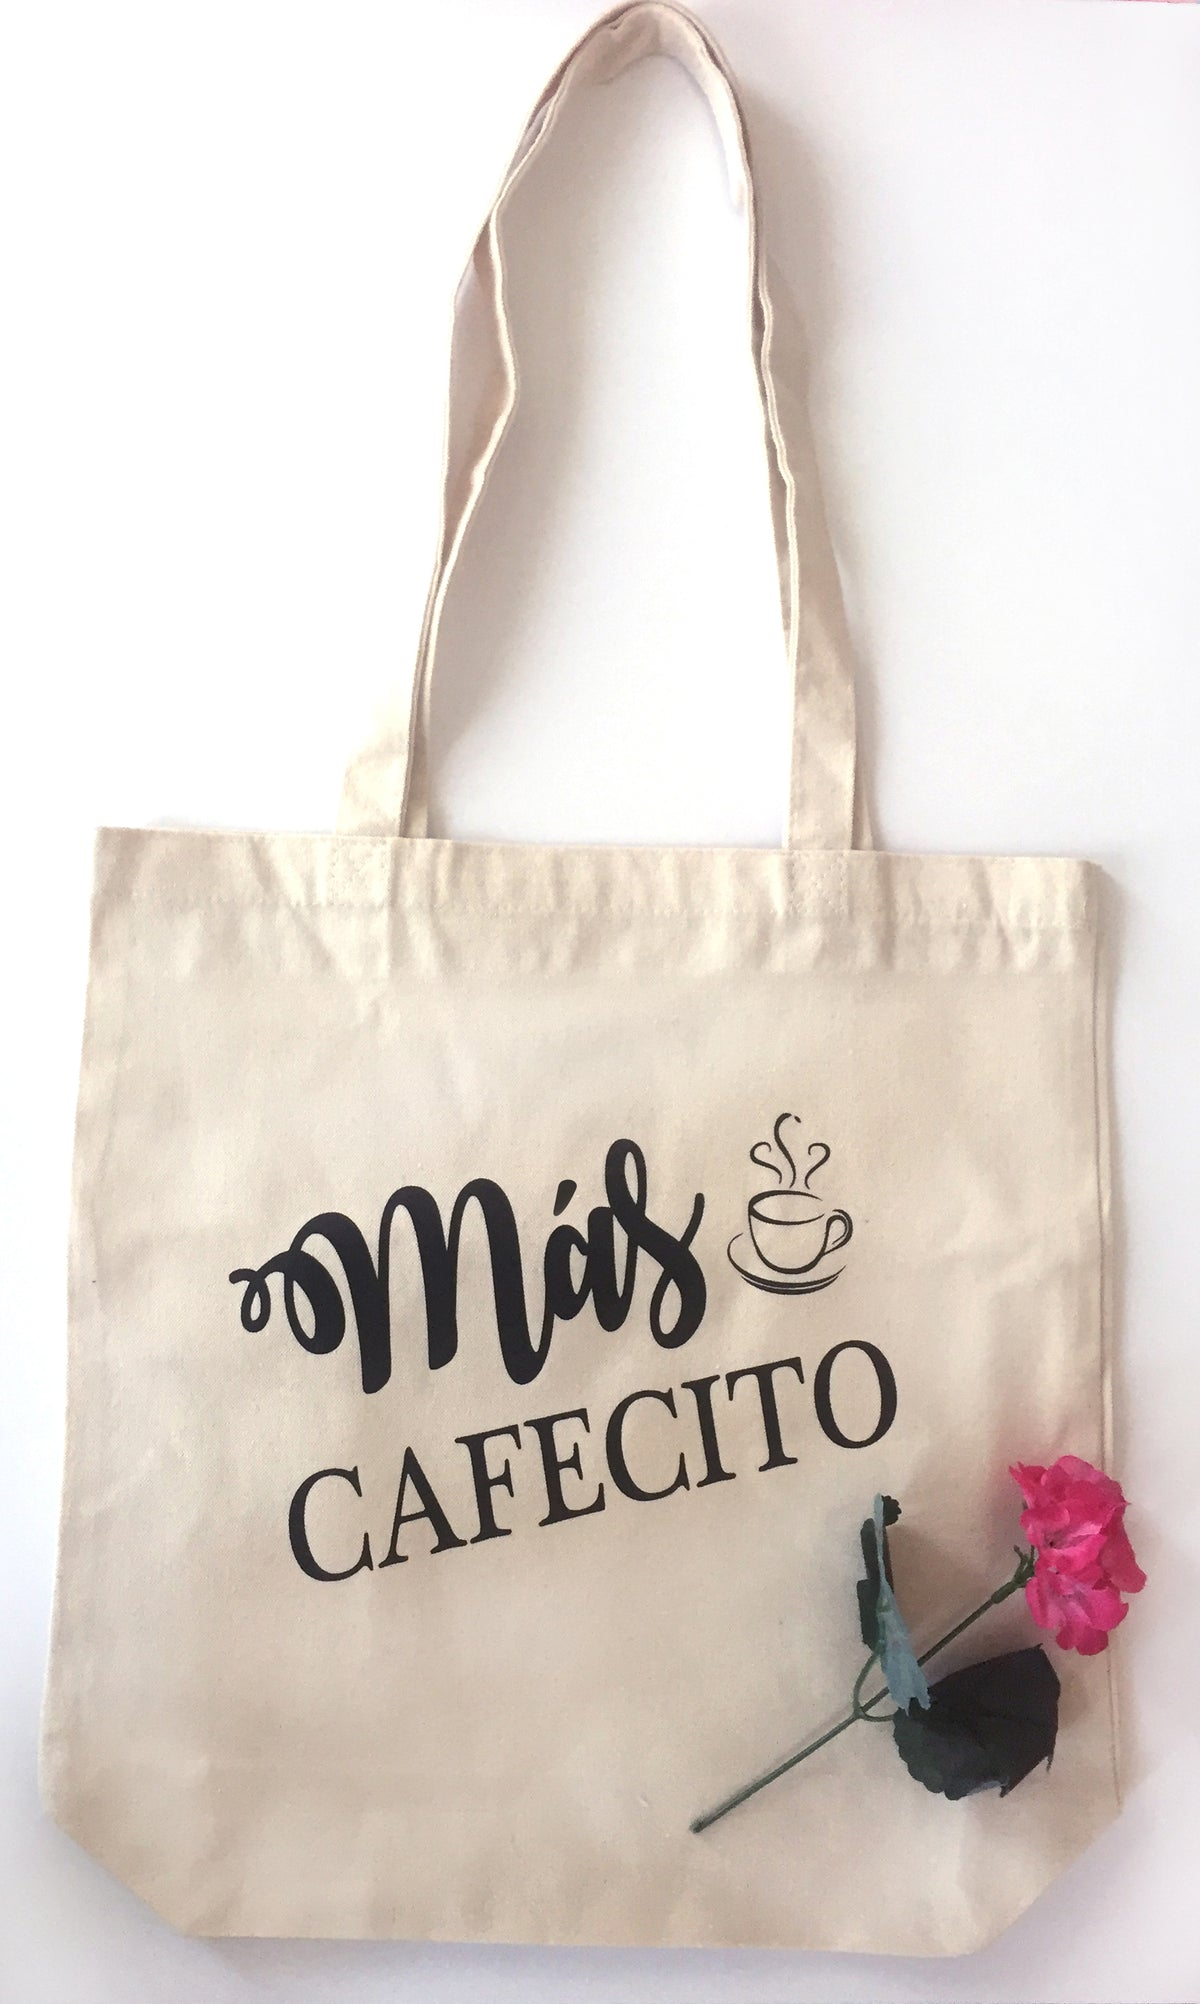 Mas Cafecito - Heavy Duty and Strong Large Natural Canvas Tote Bag with Bottom Gusset for Shopping! - Mi LegaSi